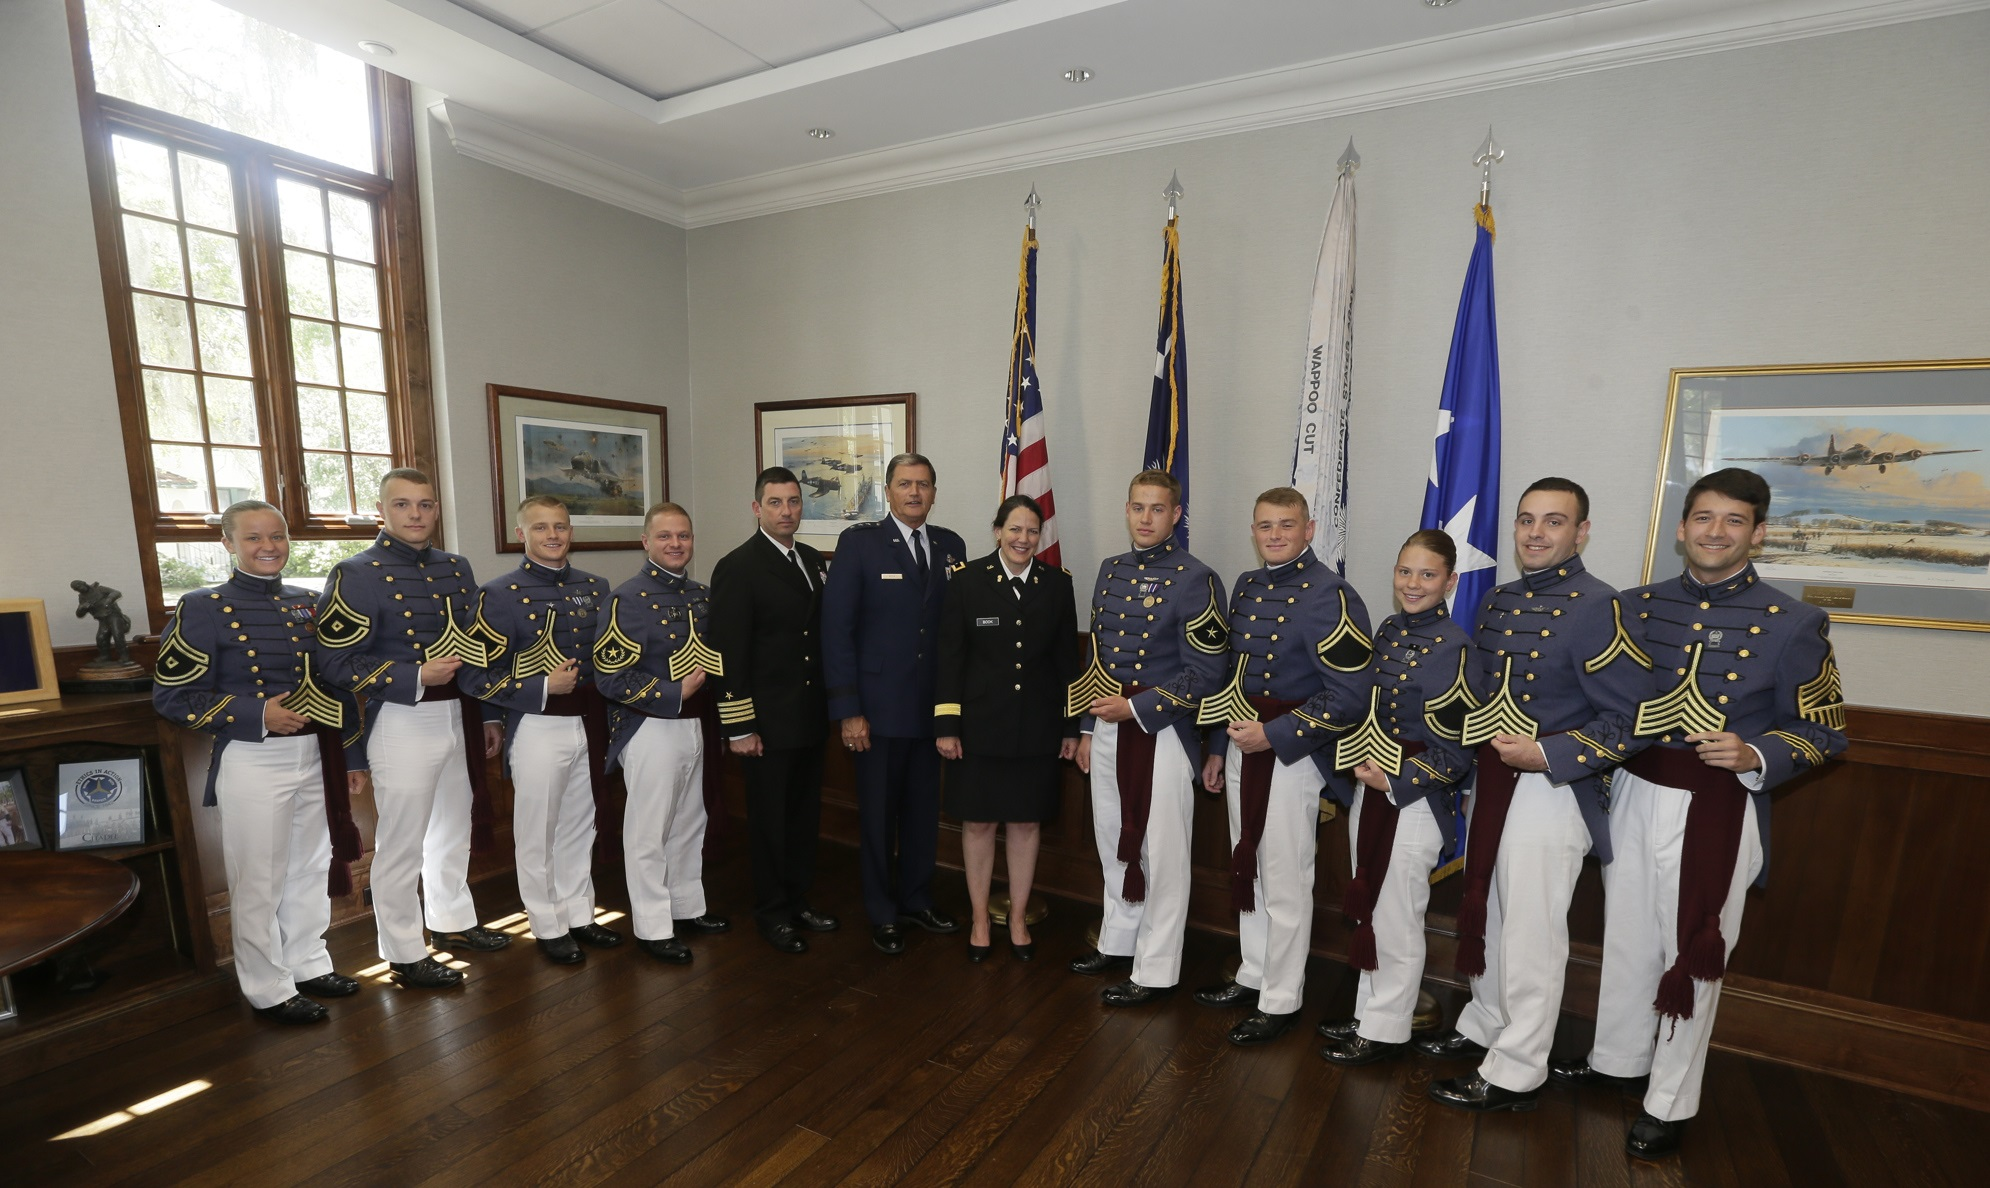 753979c0f The Citadel announces cadet leadership for the Class of 2018 - The ...